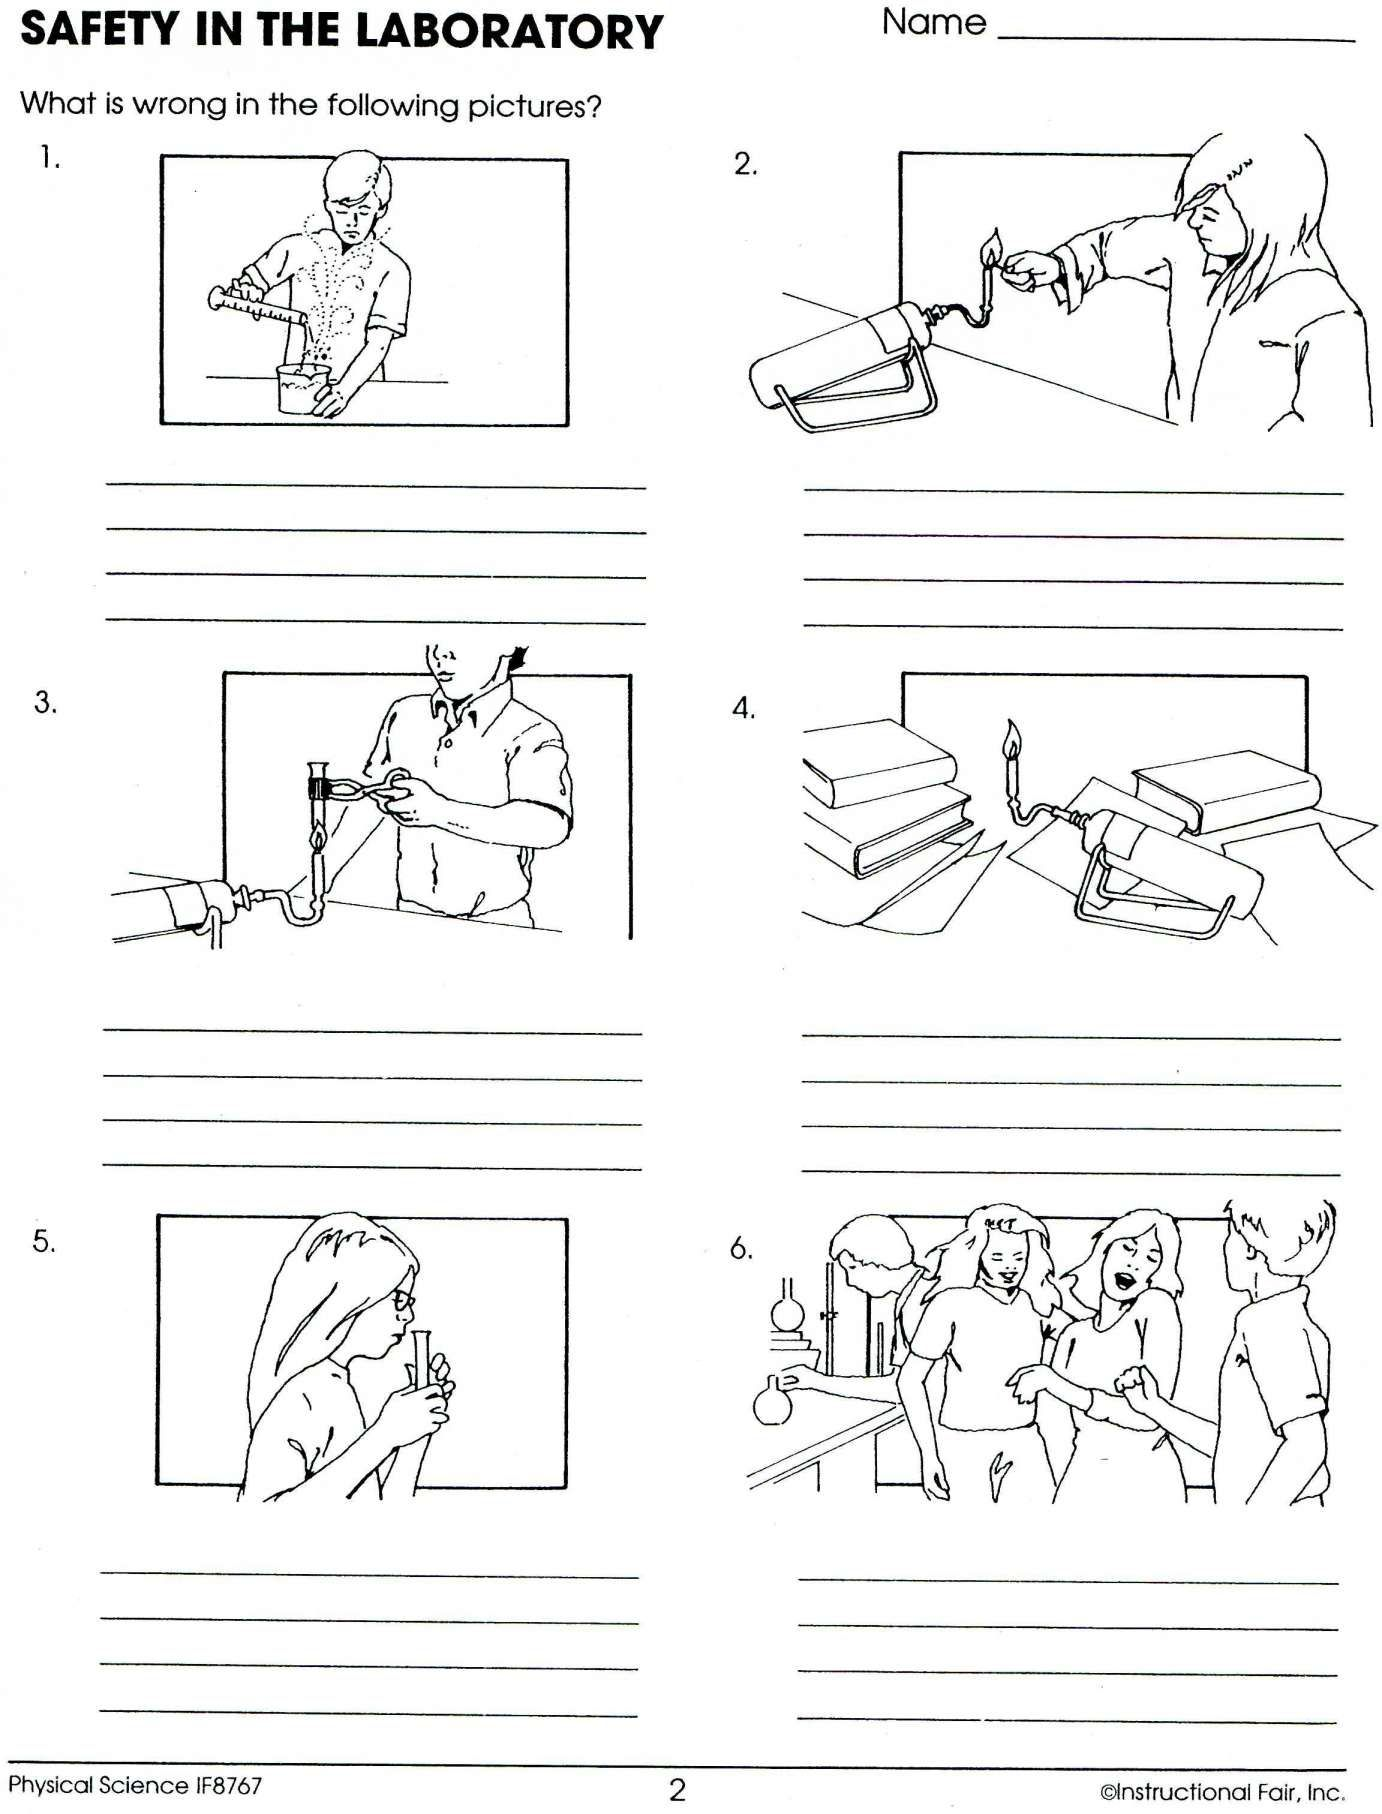 11 Middle School Science Safety Worksheet